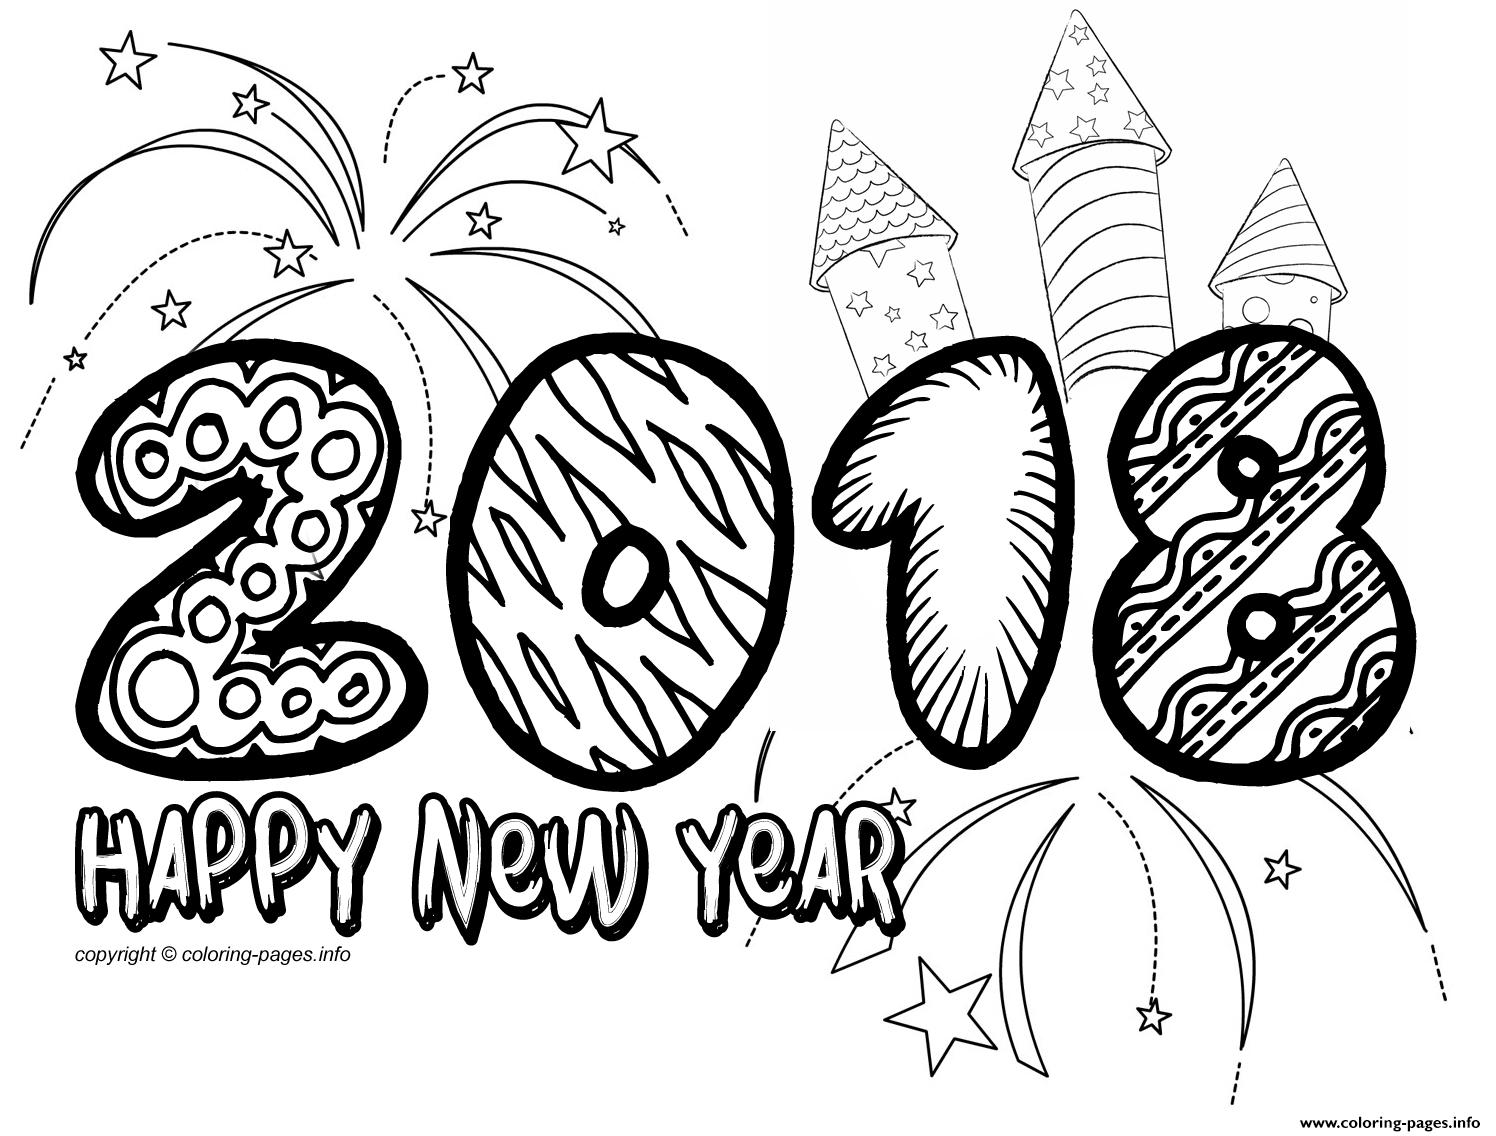 Happy New Year 2018 Doodle Coloring Pages Printable